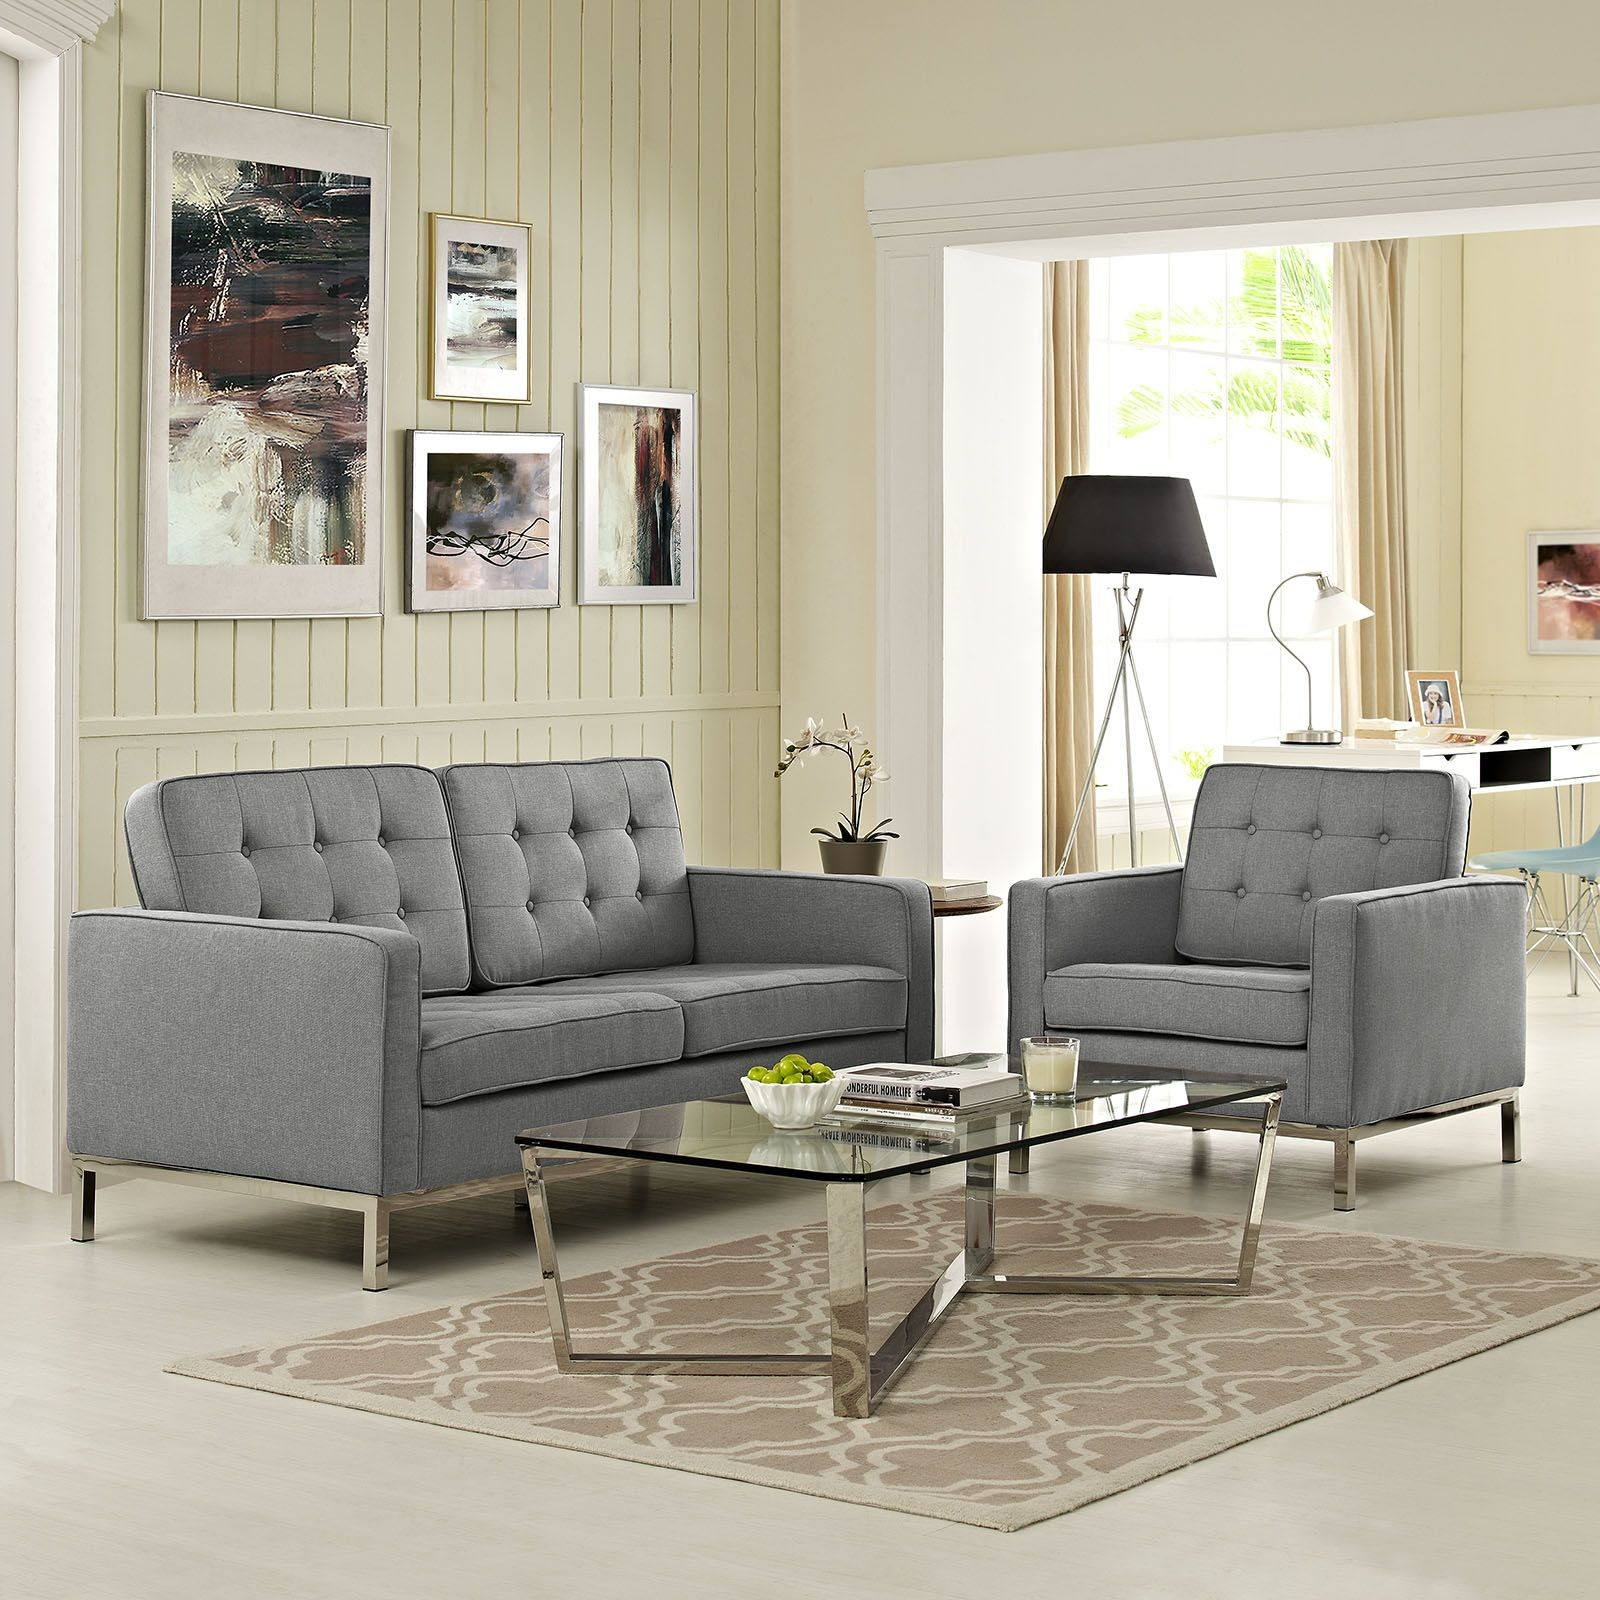 Loft light gray 2 piece upholstered living room set from for 7 piece living room set with tv